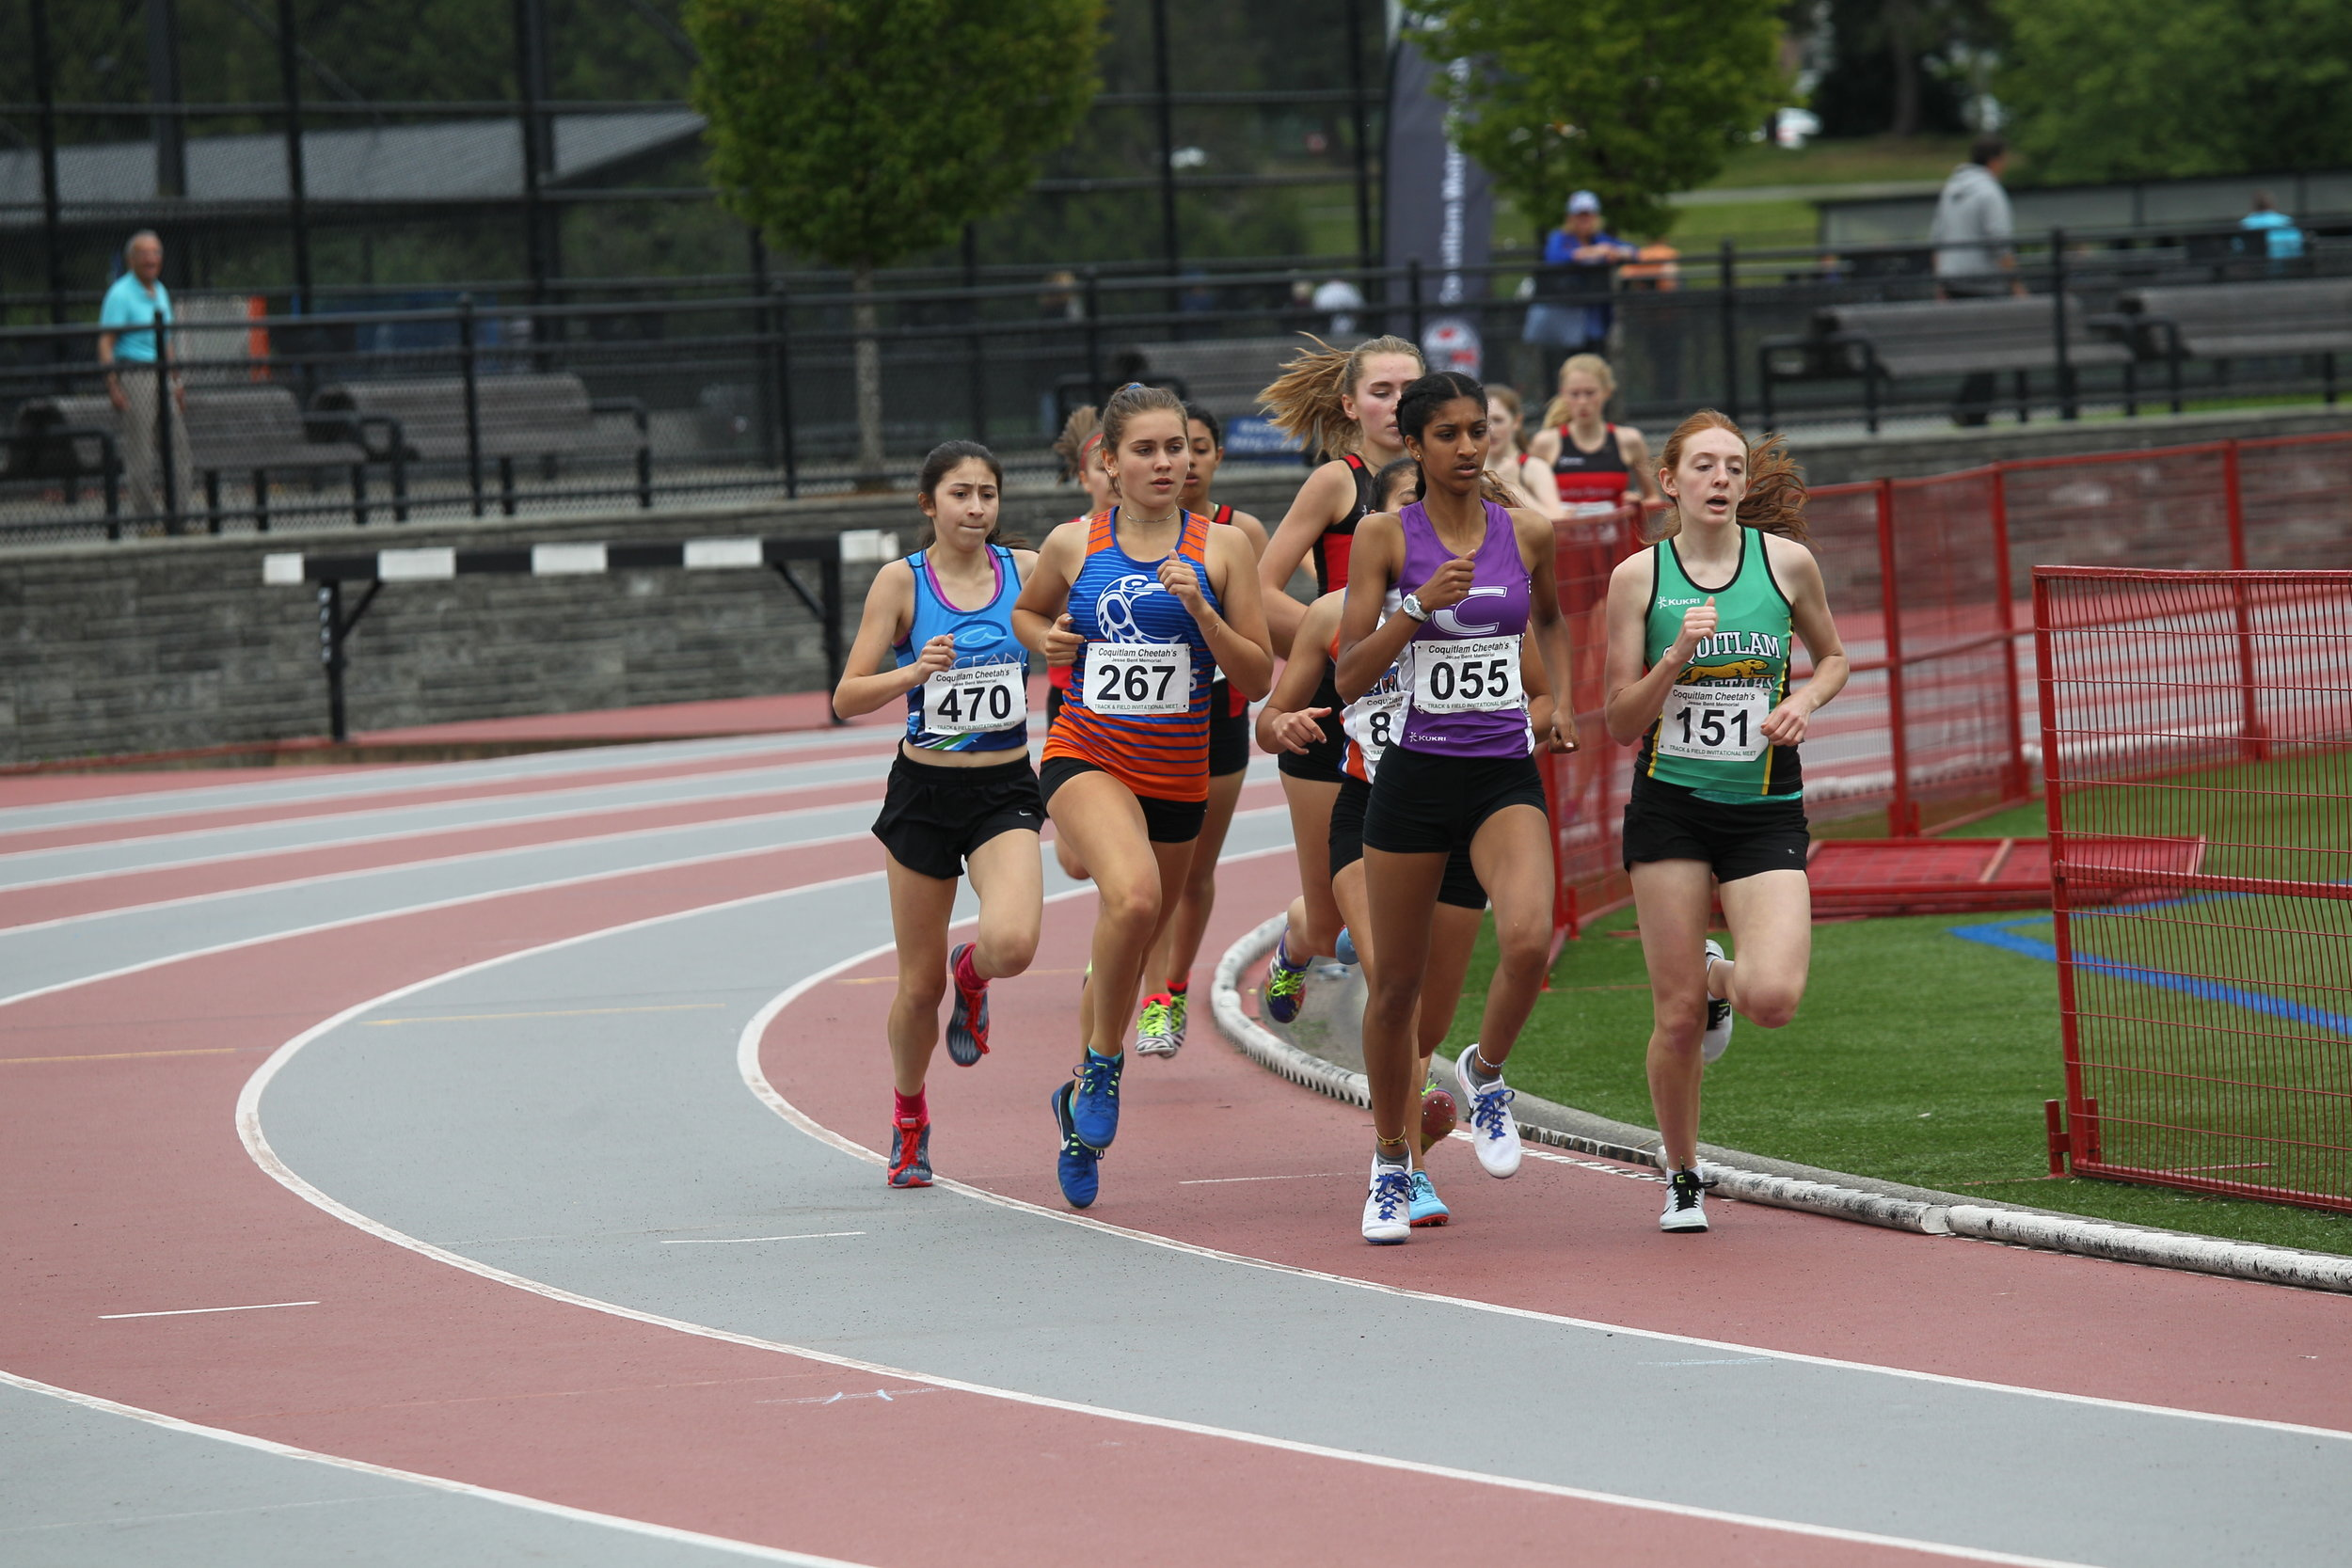 190609--Gordon Kalisch-Fasttracksportsphotography-11380.JPG